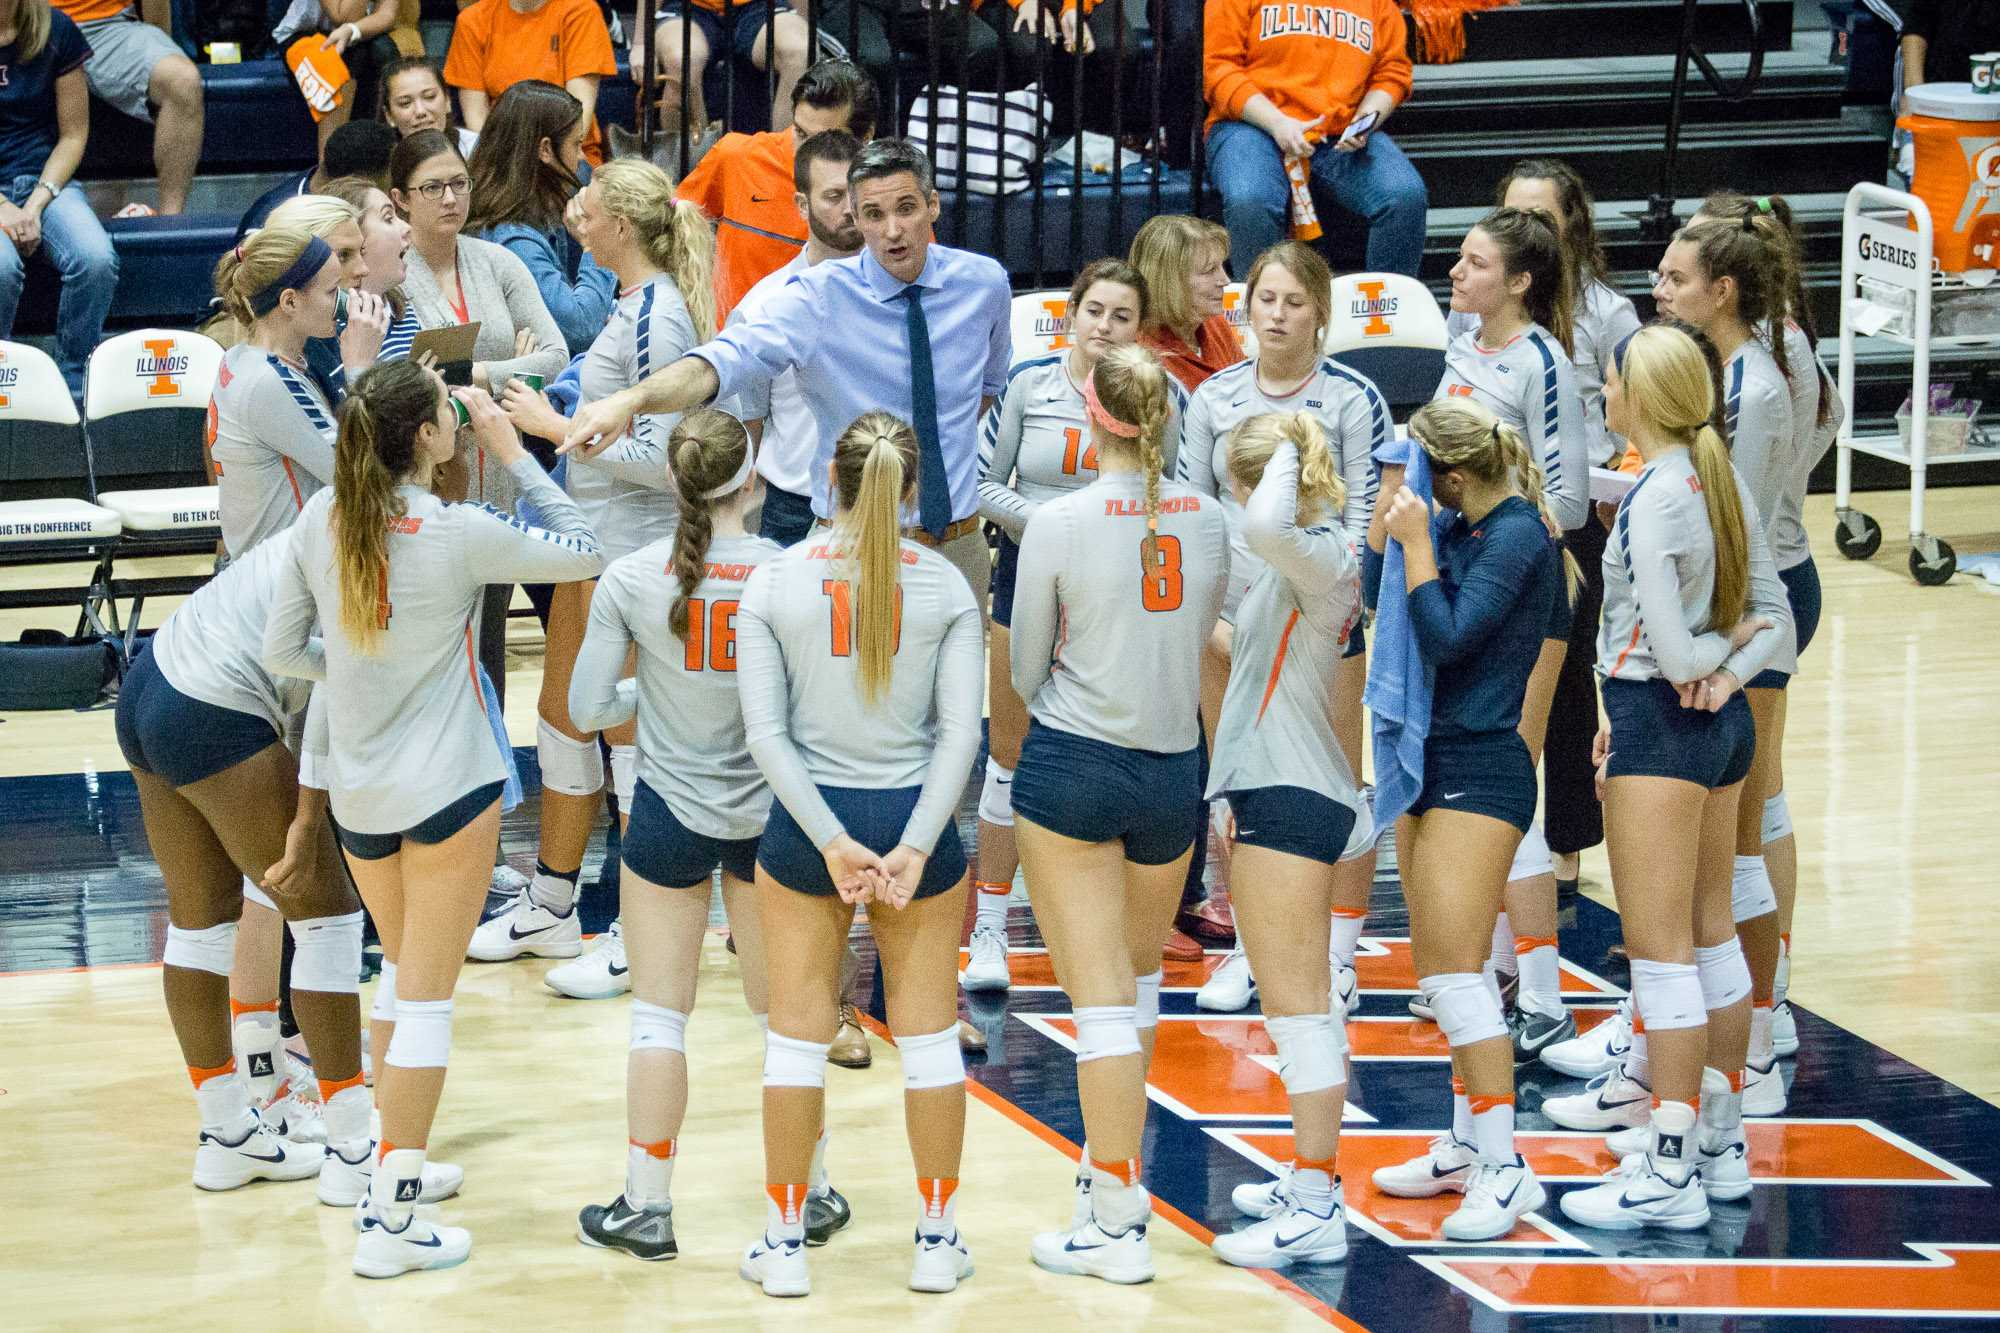 Illinois head coach Kevin Hambly talks to his team during a timeout in the match against Northwestern at Huff Hall on Saturday, October 15. The Illini won 3-0.